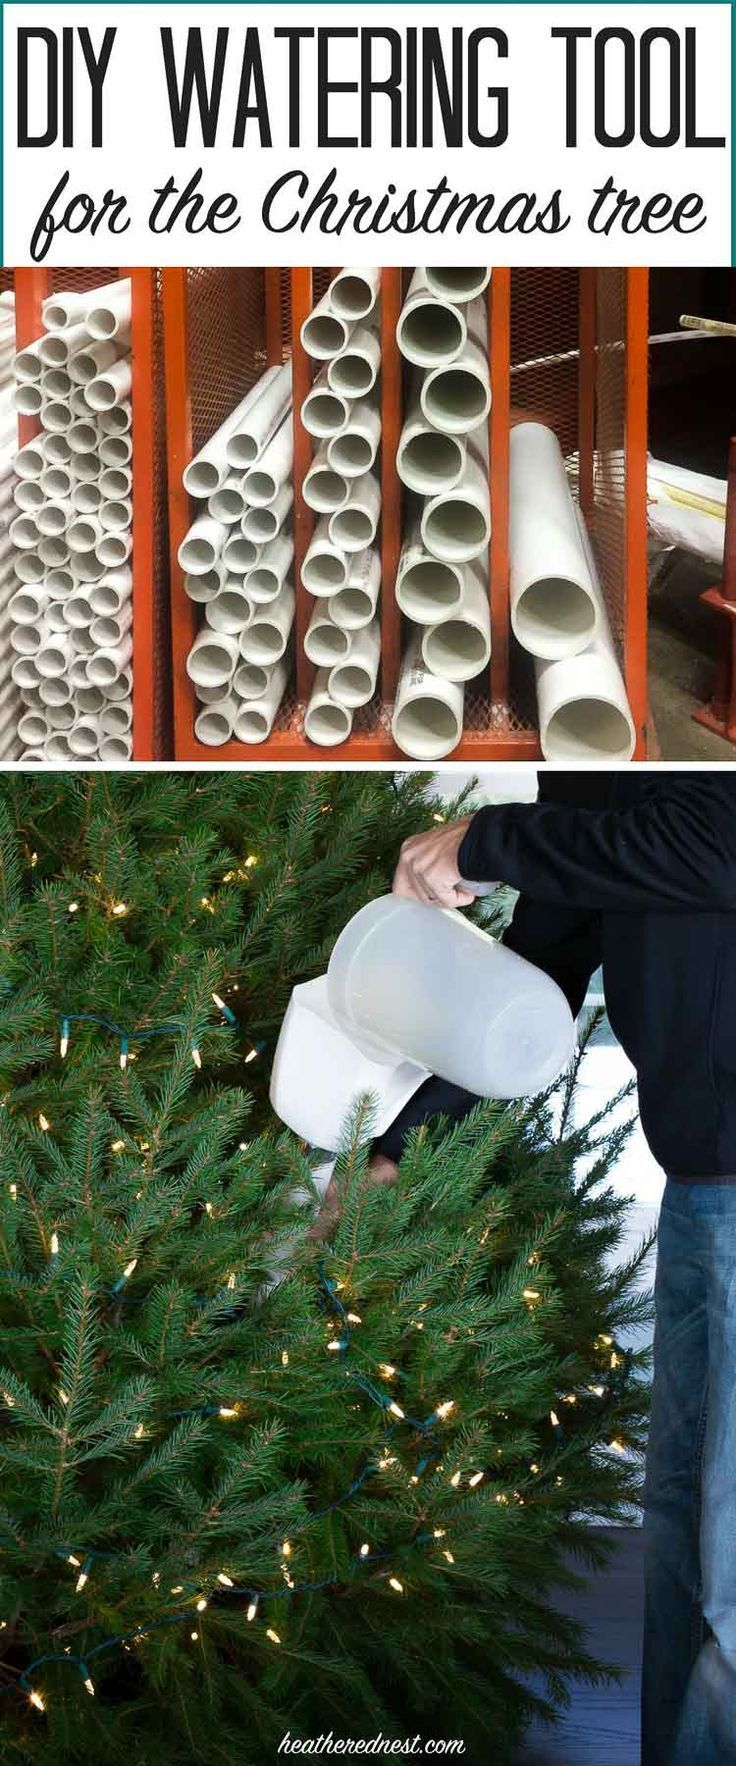 WHY DIDN'T I THINK OF THIS?! Easy DIY tool prevents breaking your back to water the Christmas tree! Best holiday DIY ever!! from http://heatherednest.com